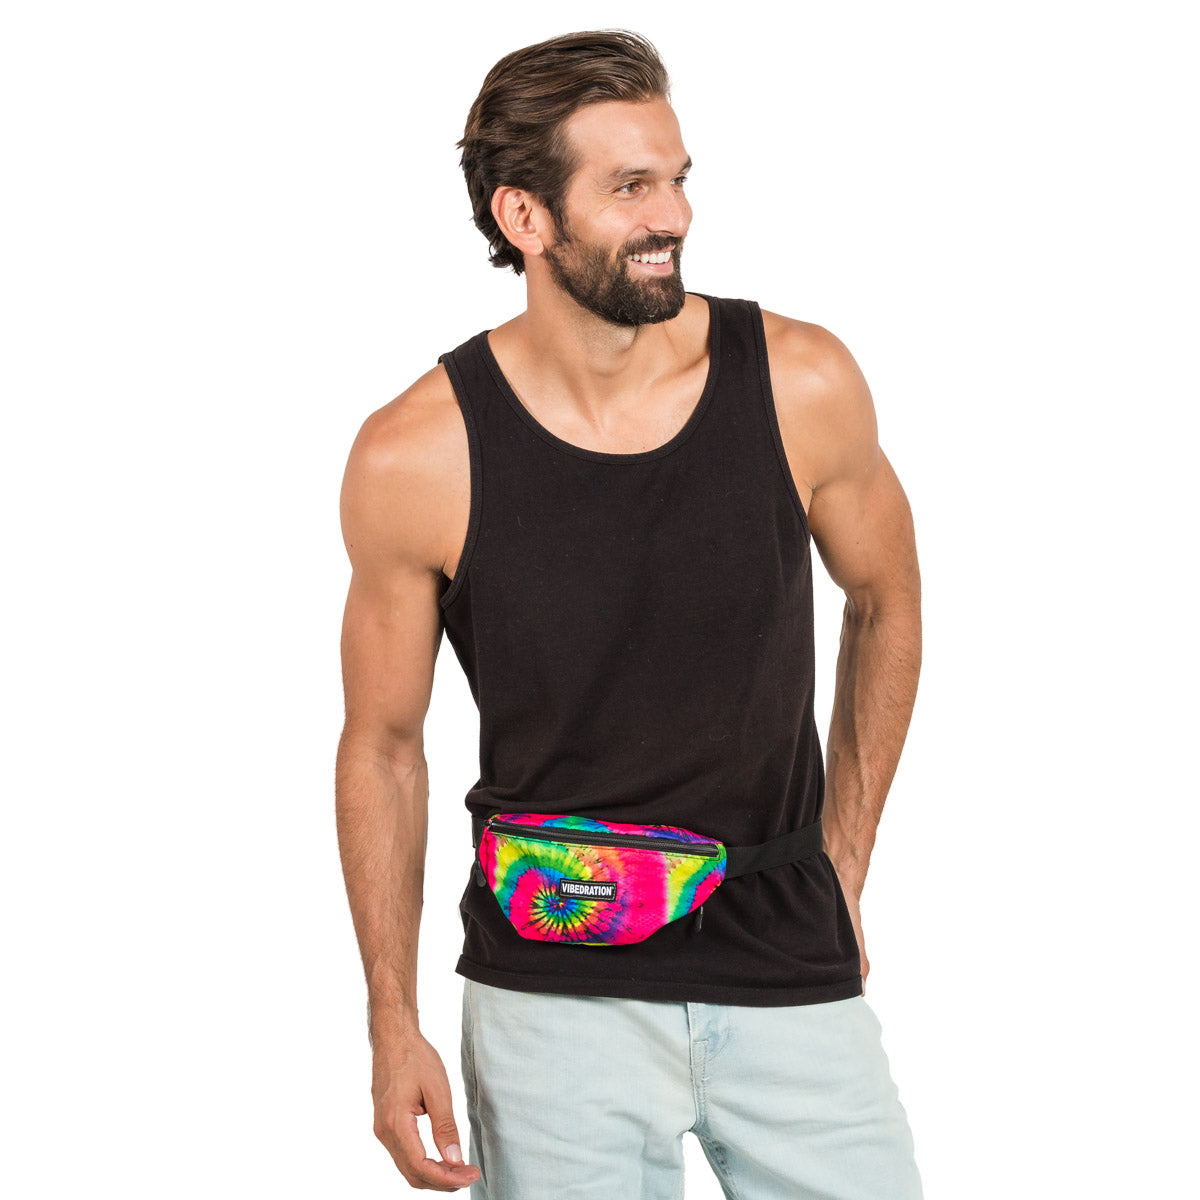 Male wearing Tie-Dye Printed Fanny Pack for Festivals